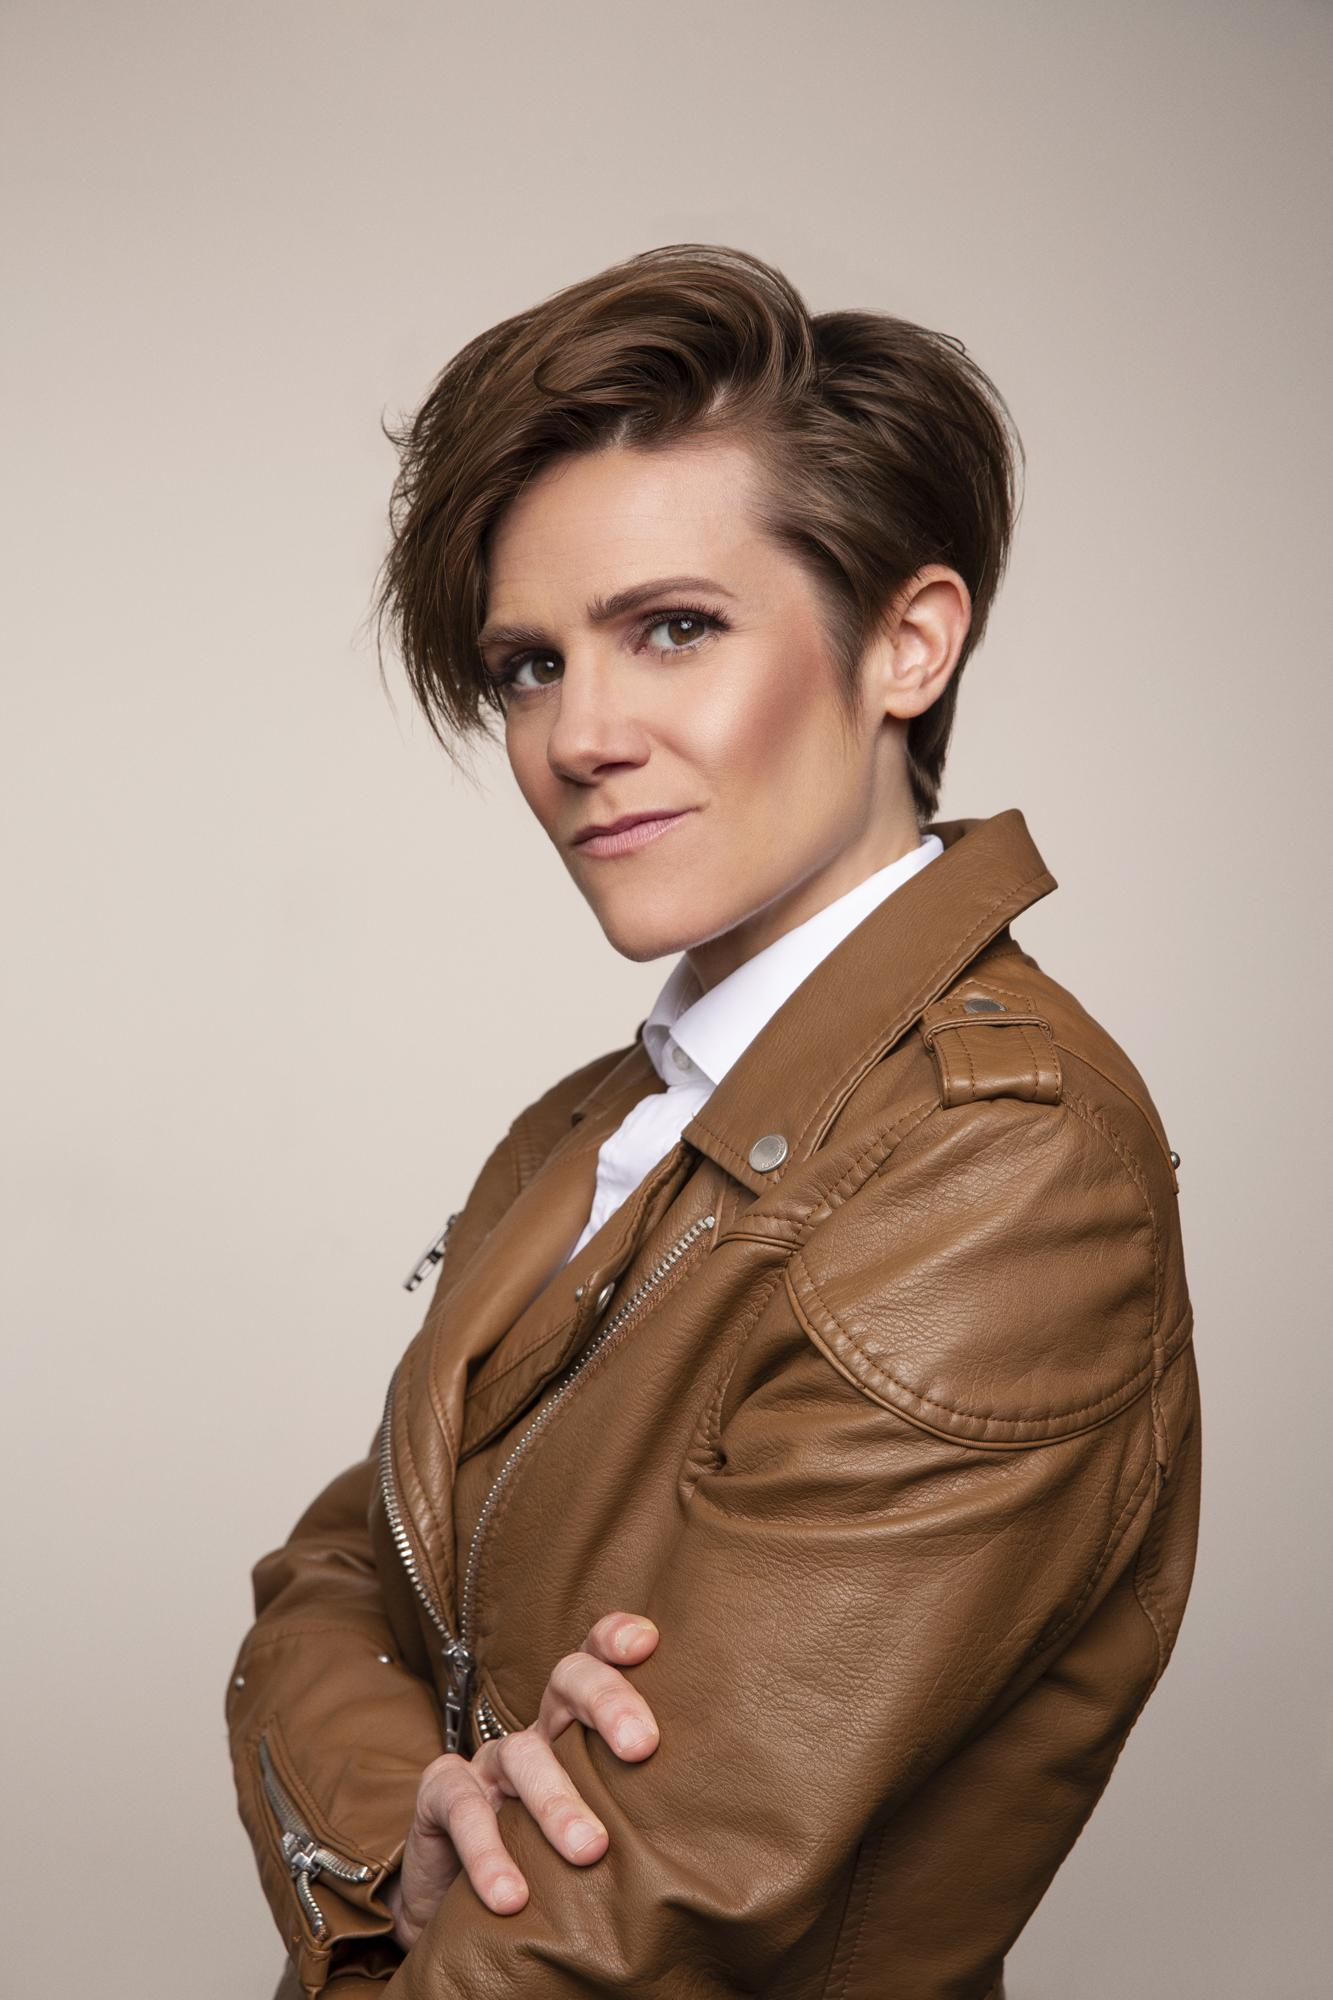 Cameron Esposito will perform Oct. 6 at the Wilbur.